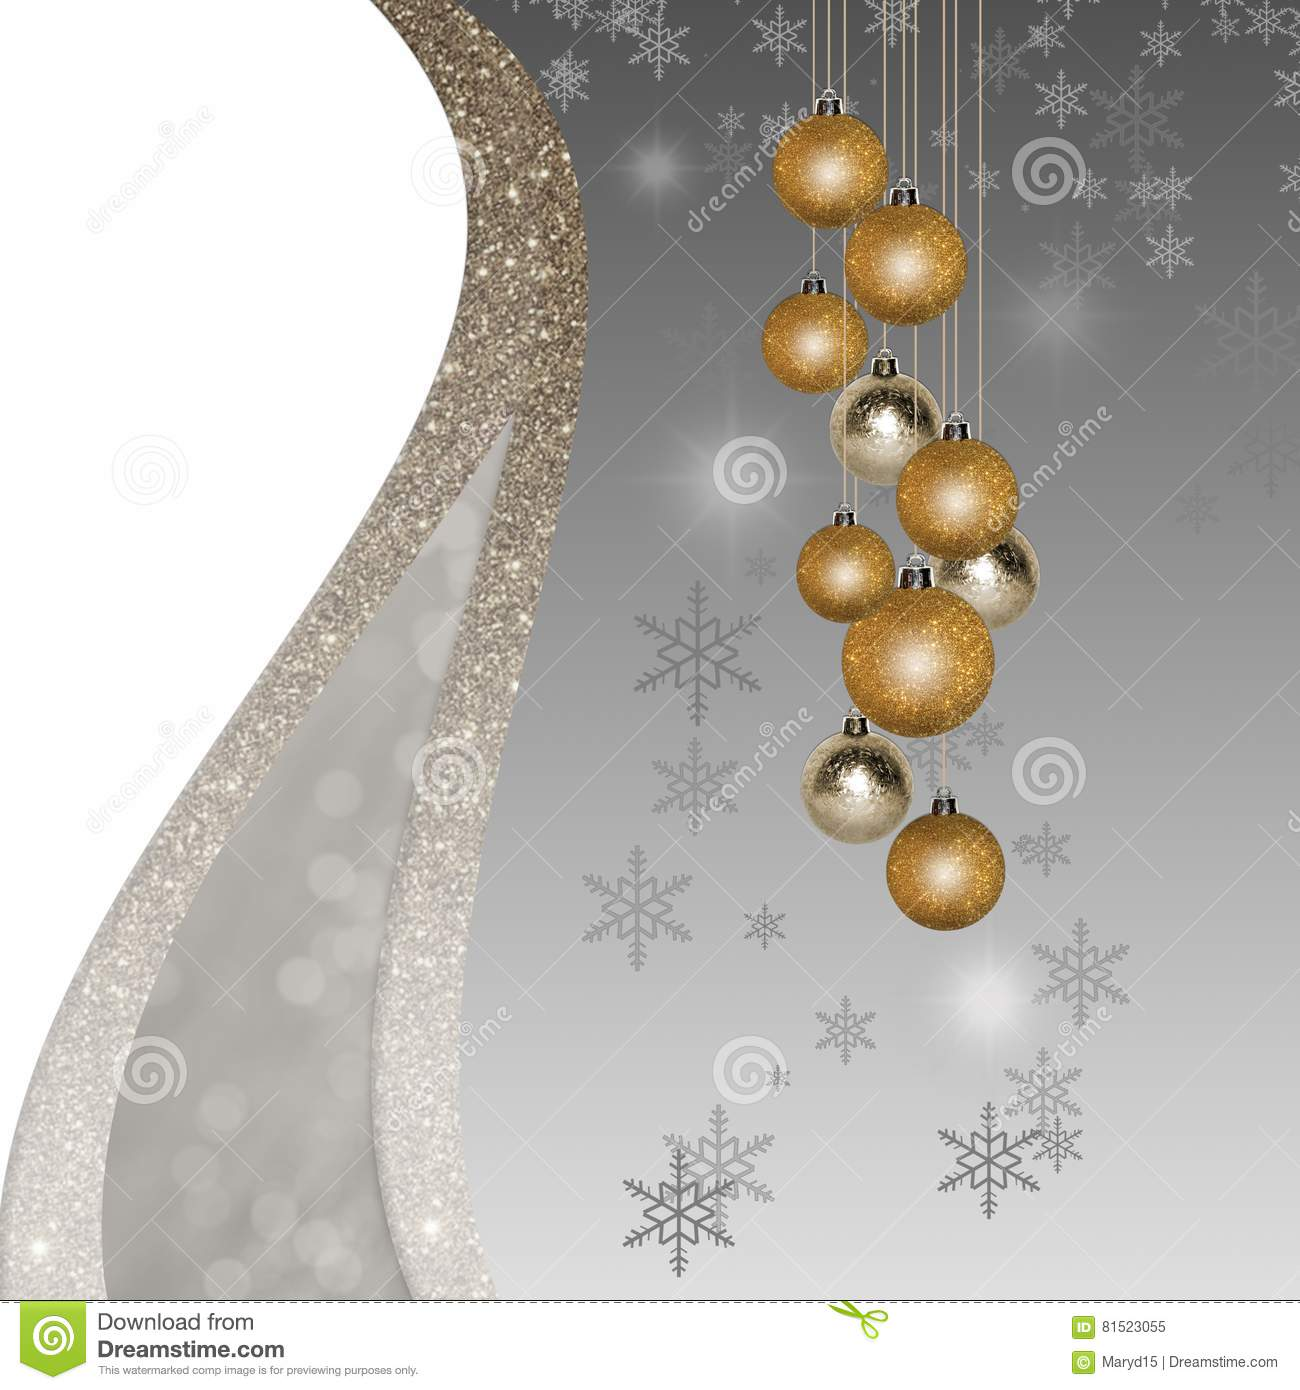 Christmas Background With Glitter Golden Silver Ornaments Stock